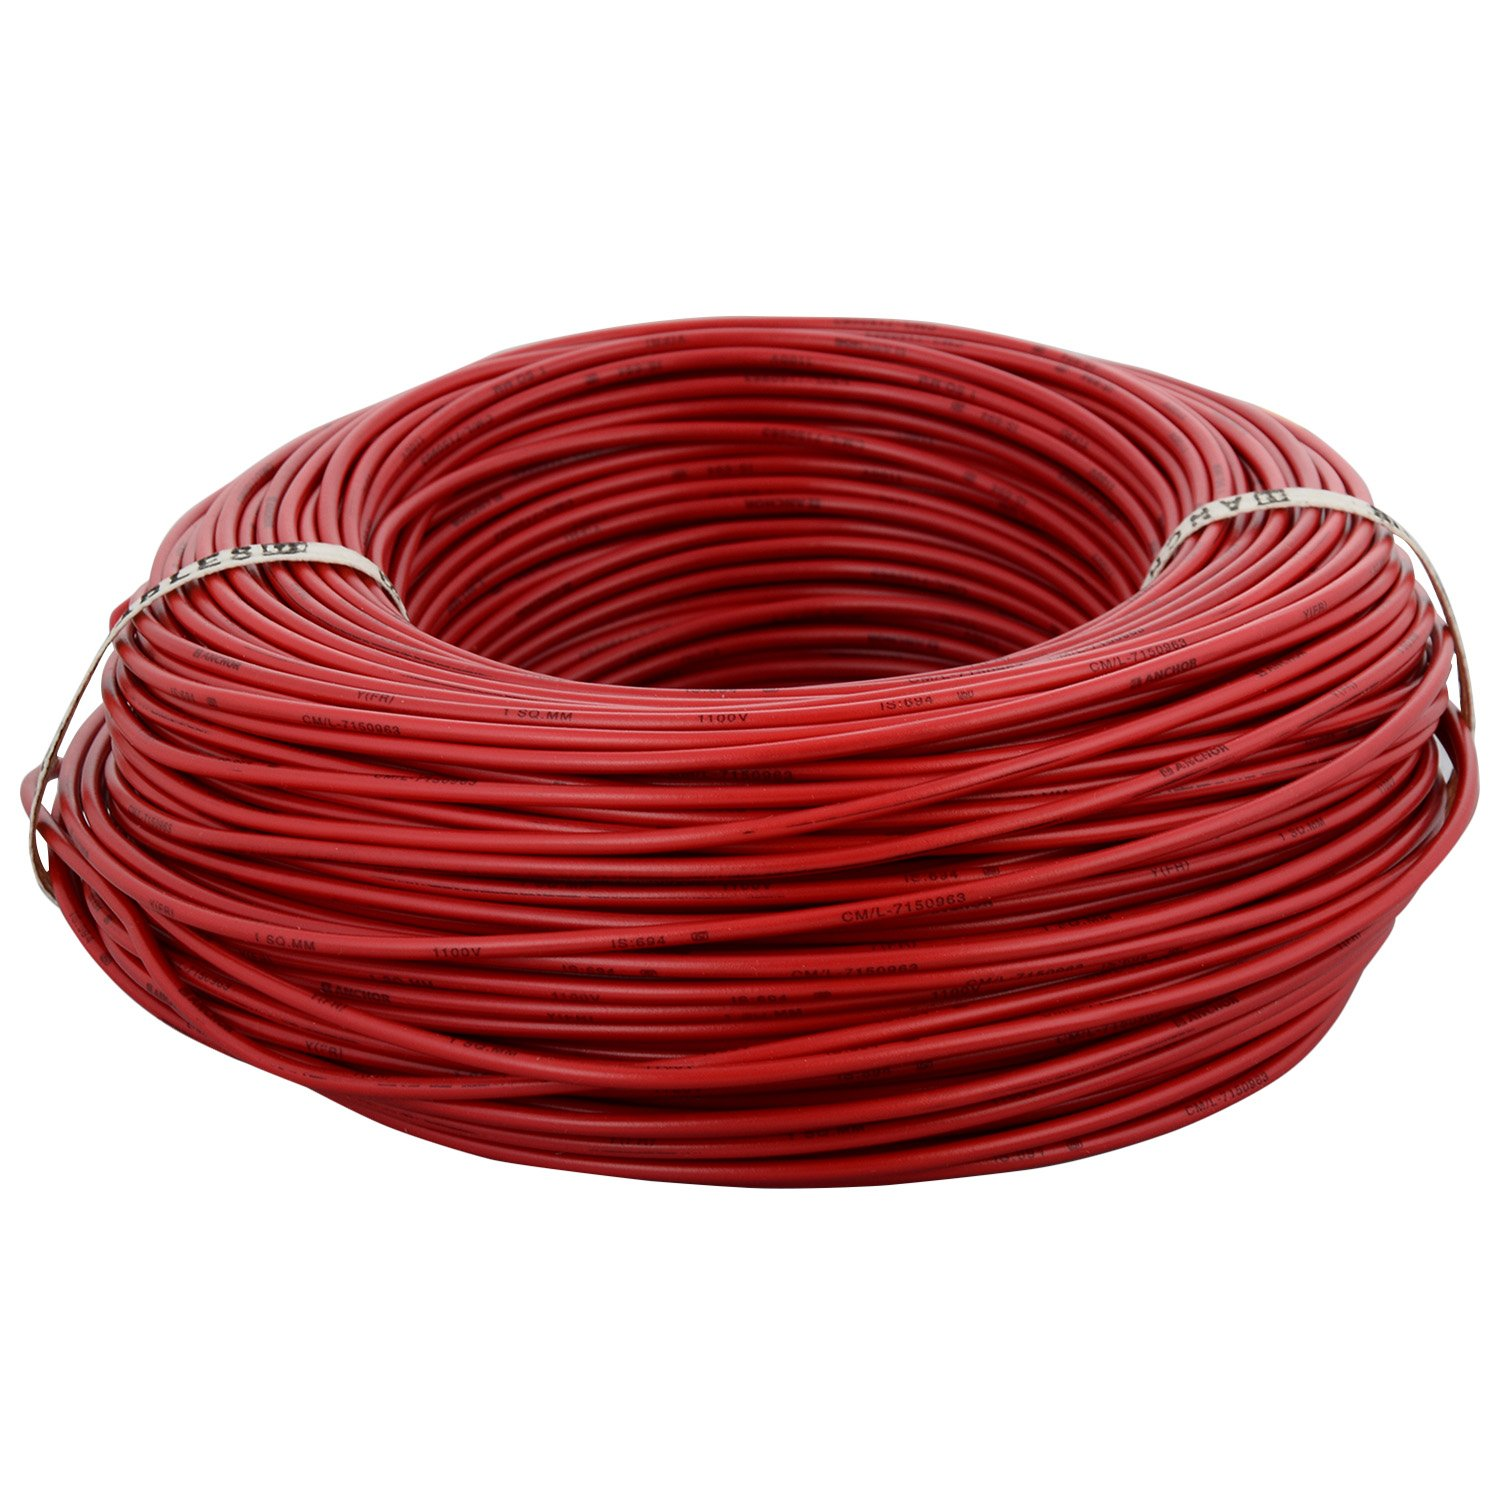 Anchor Insulated Copper Pvc Cable 10 Sq Mm Wire Red Electrical House Wiring